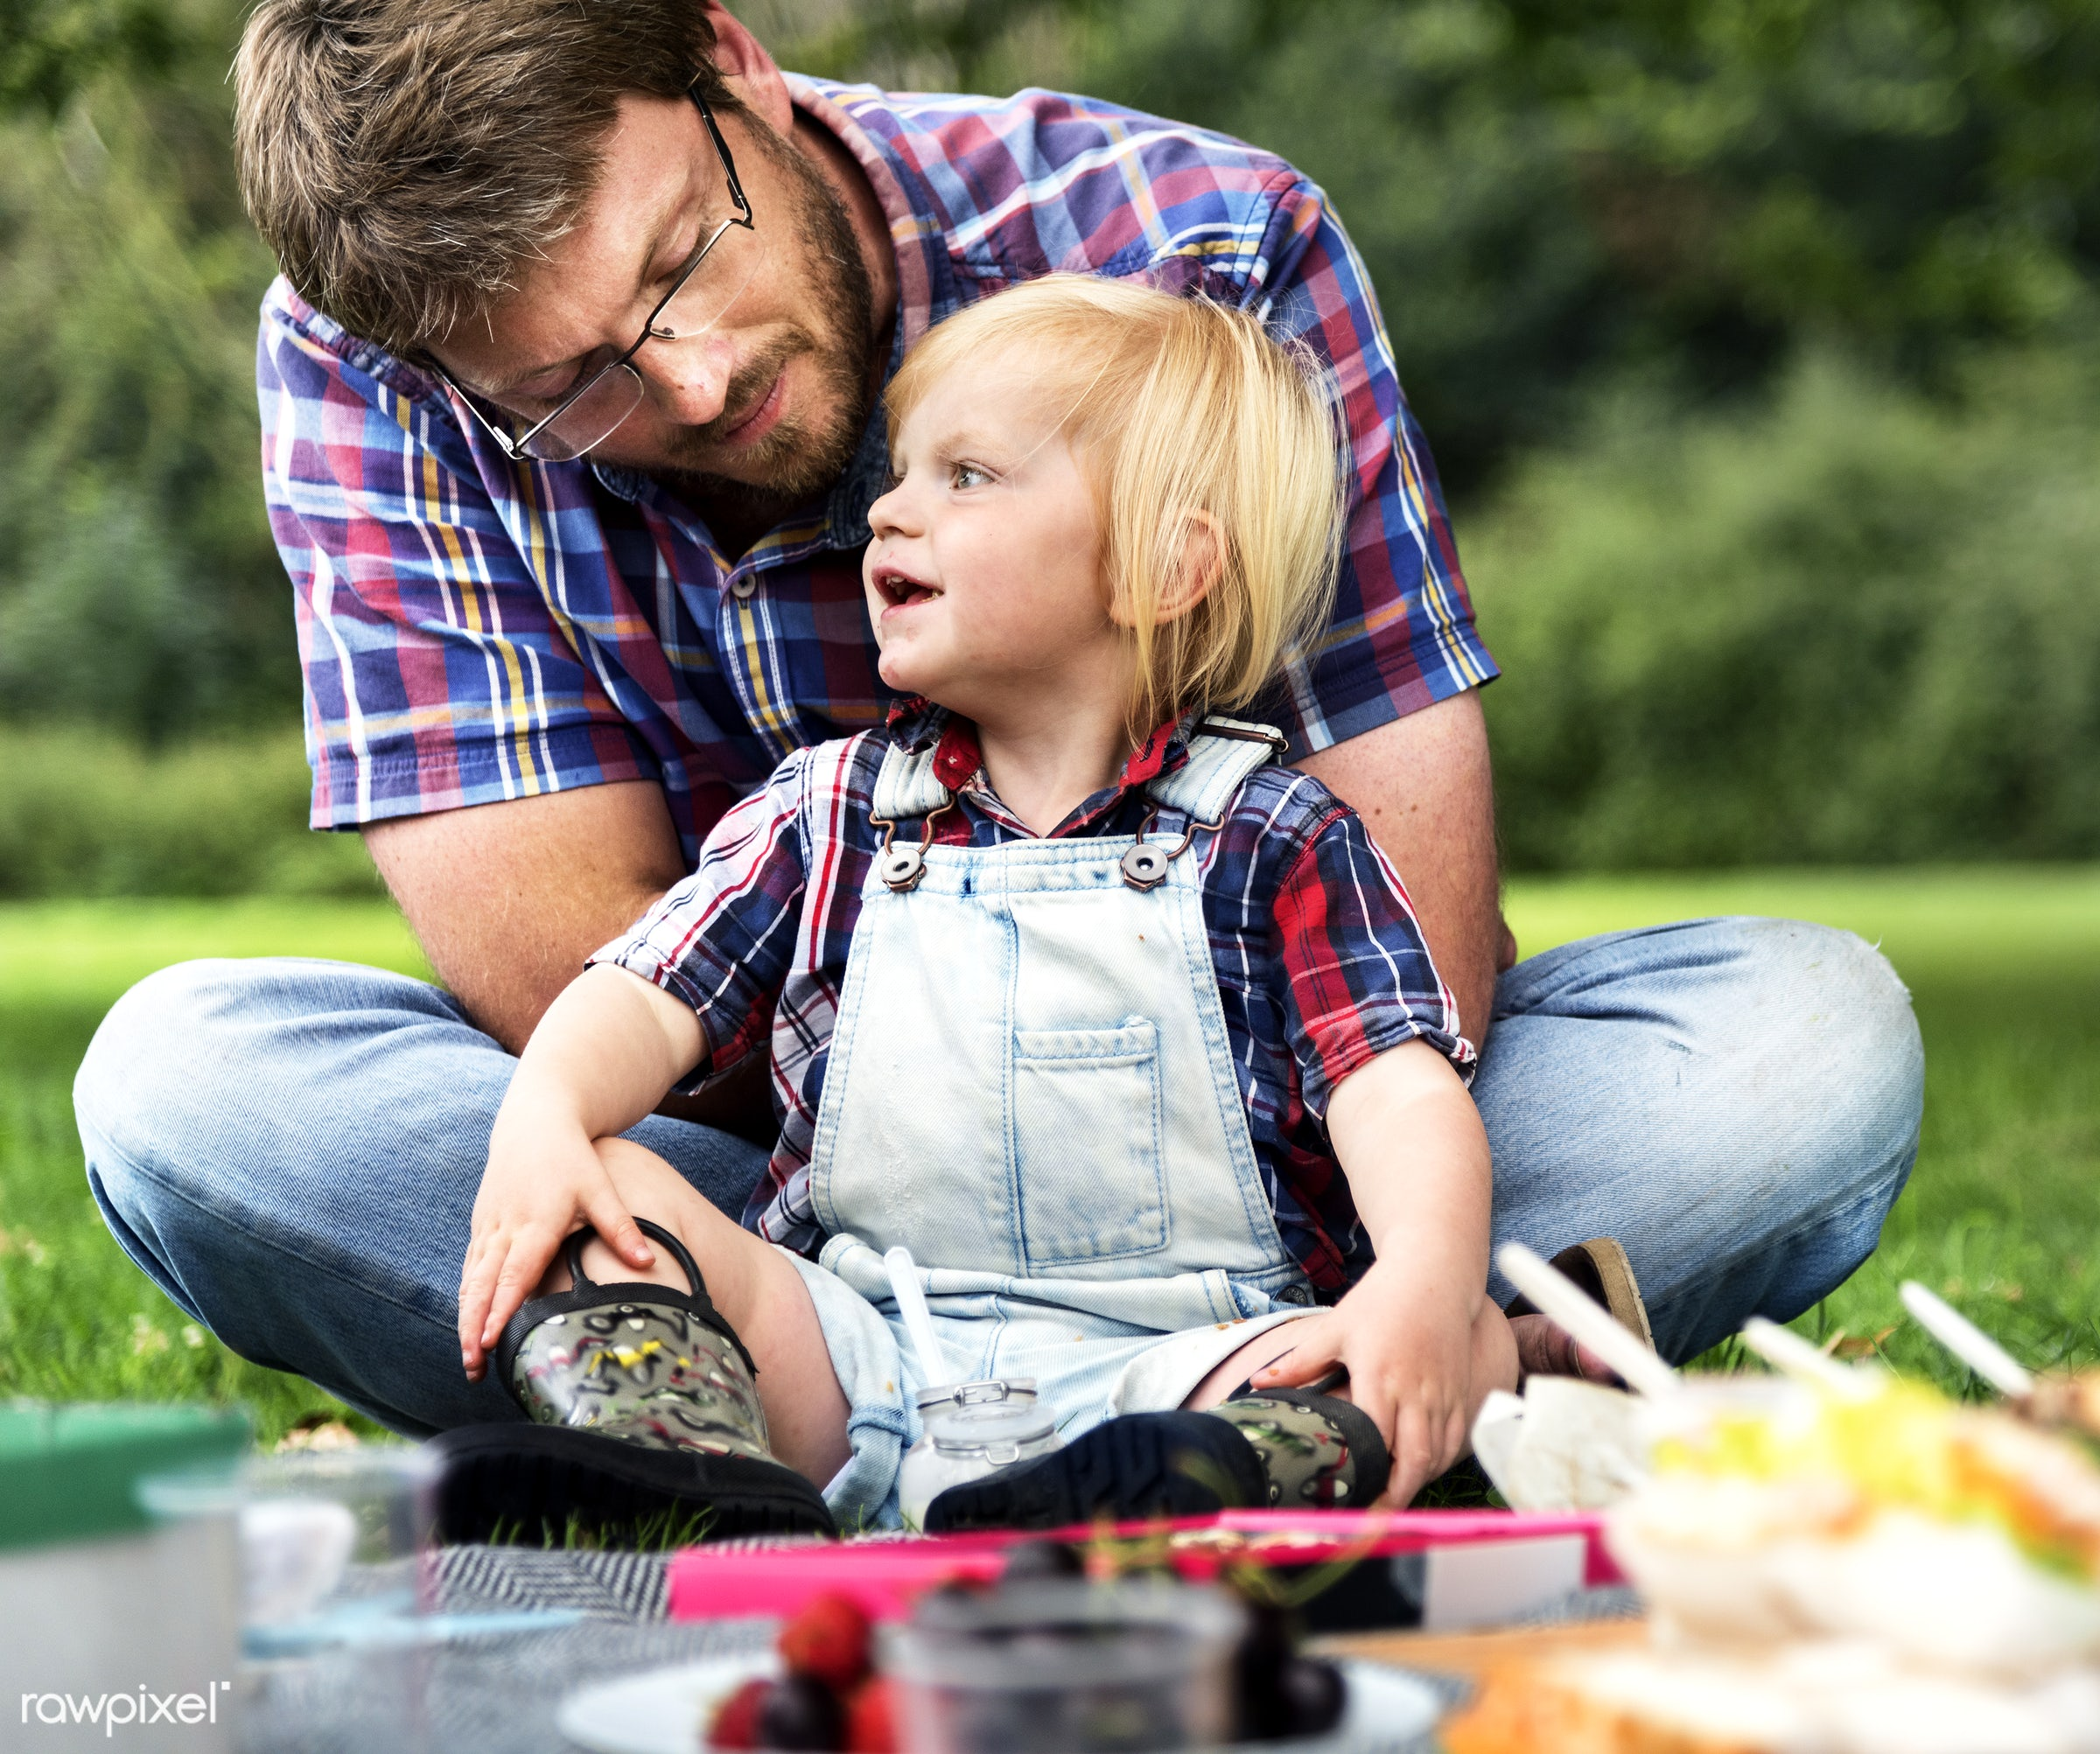 bonding, boy, care, casual, cheerful, child, childhood, enjoyment, environmental, family, father, field, food, fun, garden,...